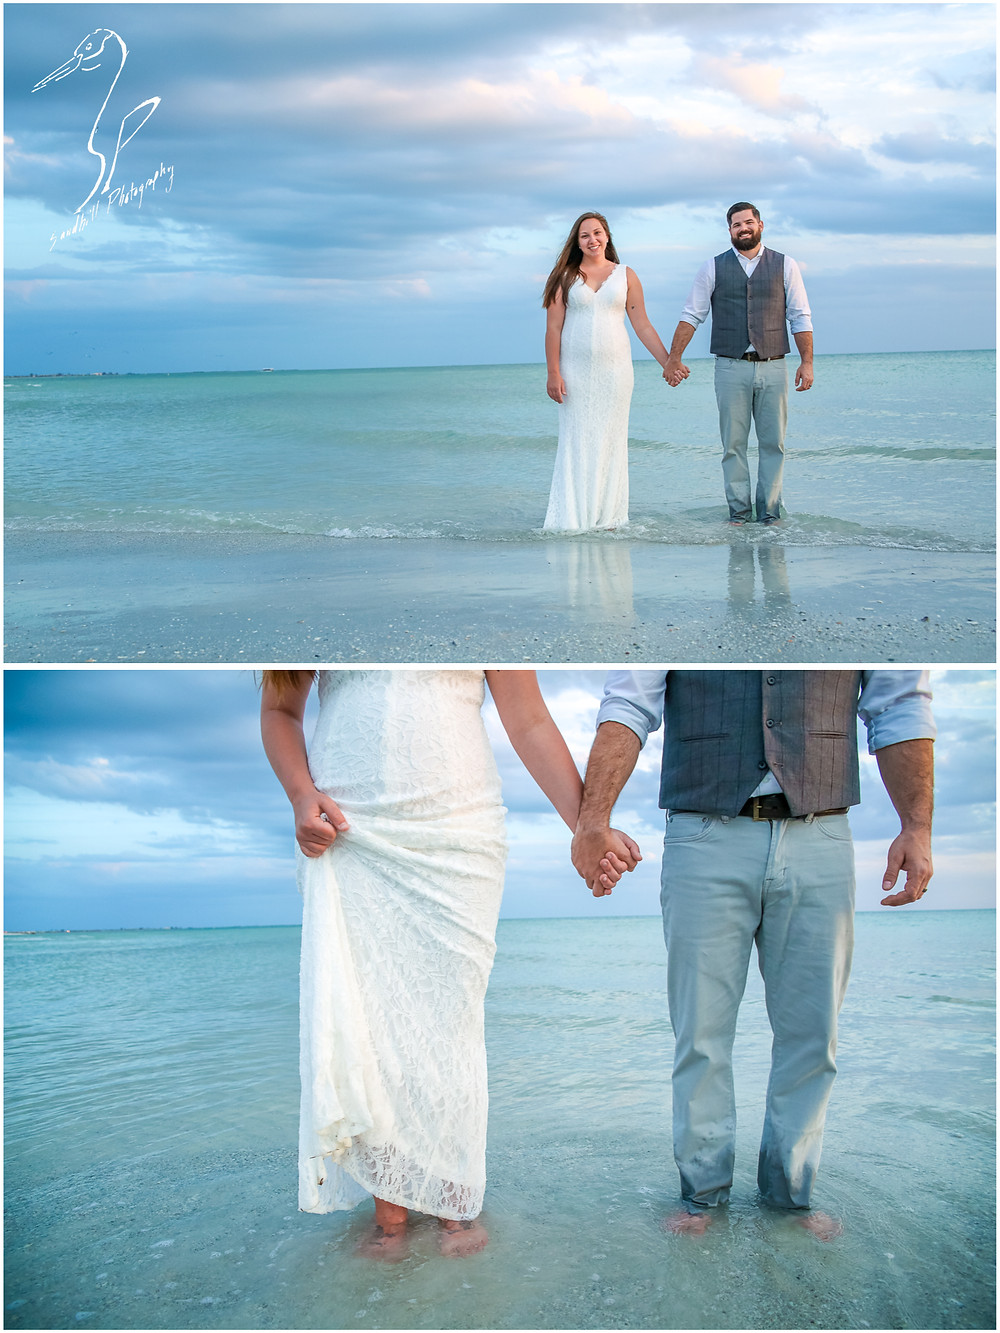 Treasure Island Wedding, Bride and groom holding hands in the water